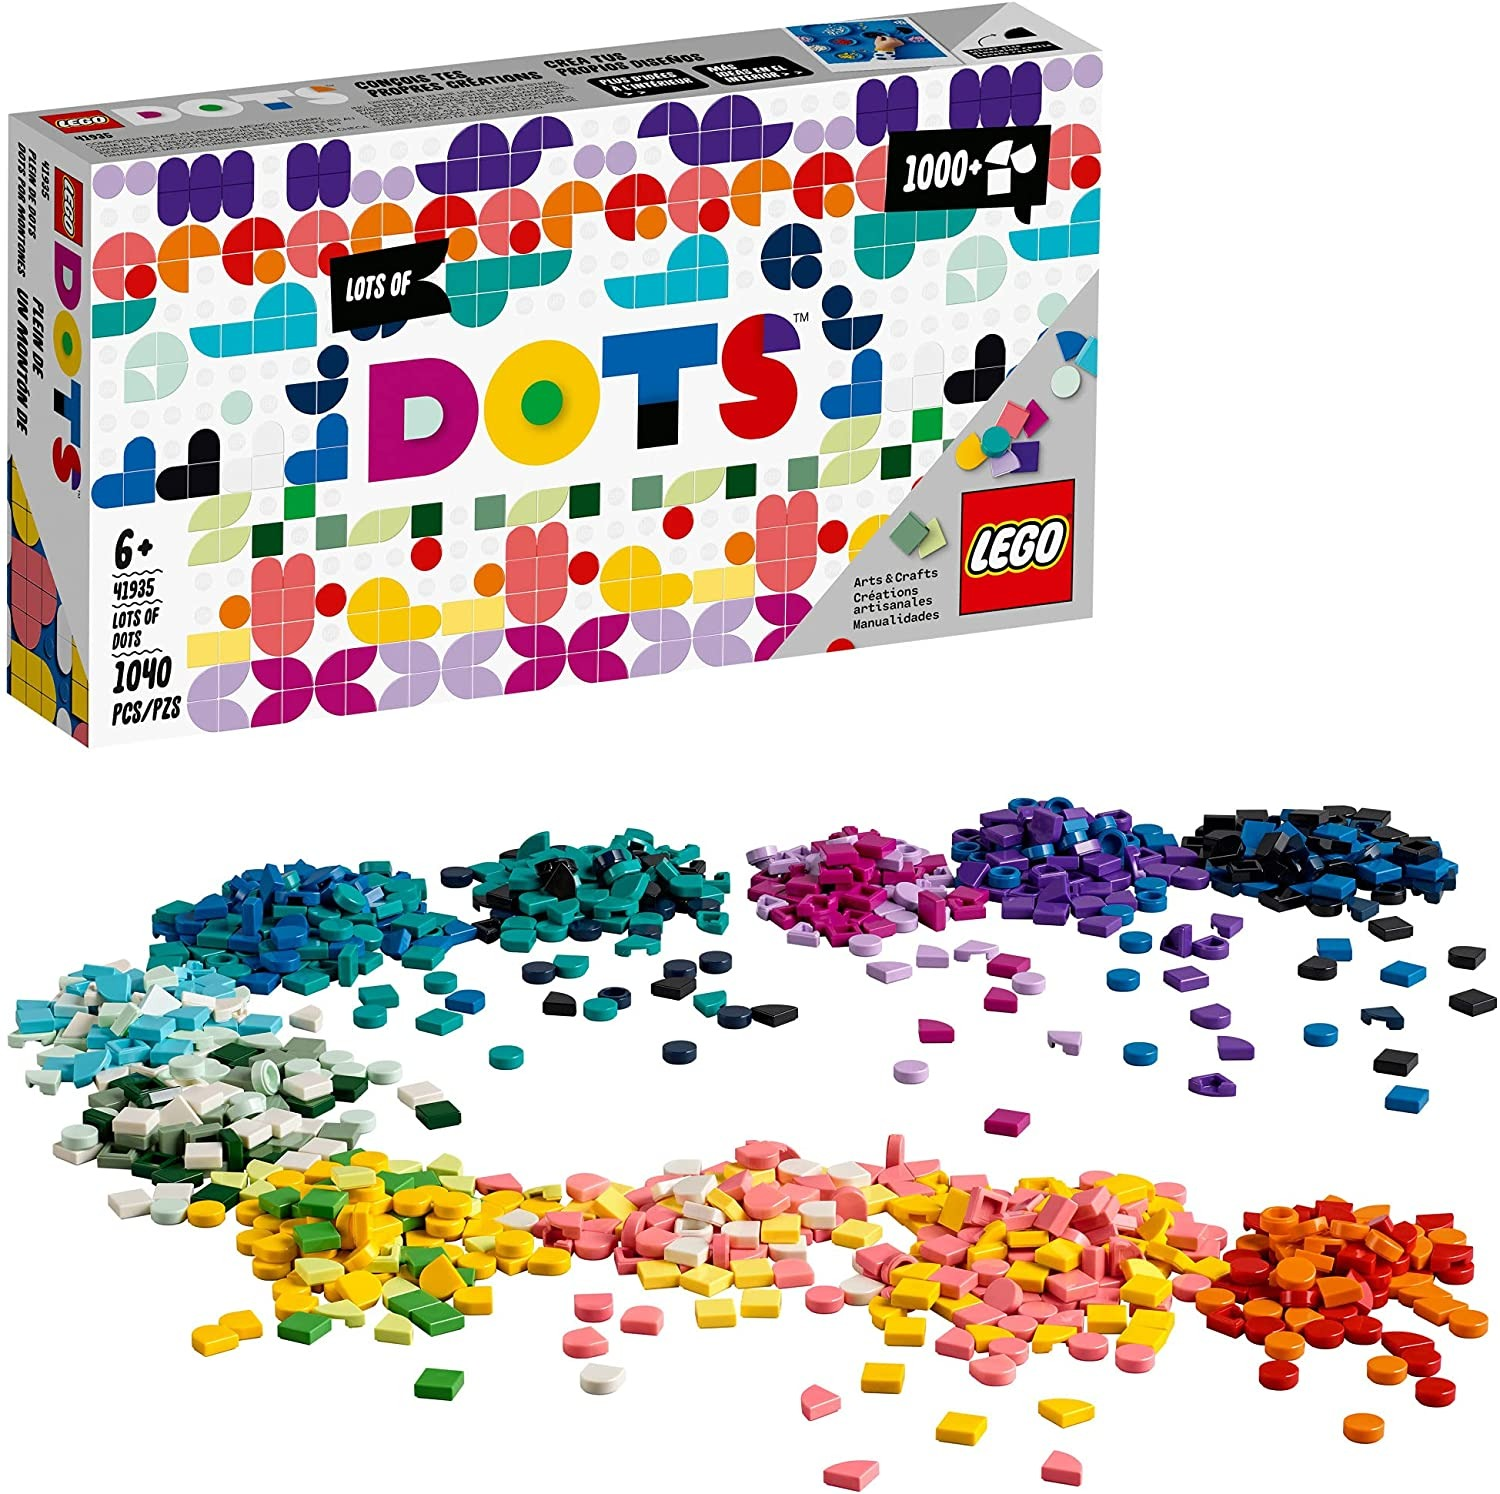 LEGO Lots of DOTS, best lego sets for adults